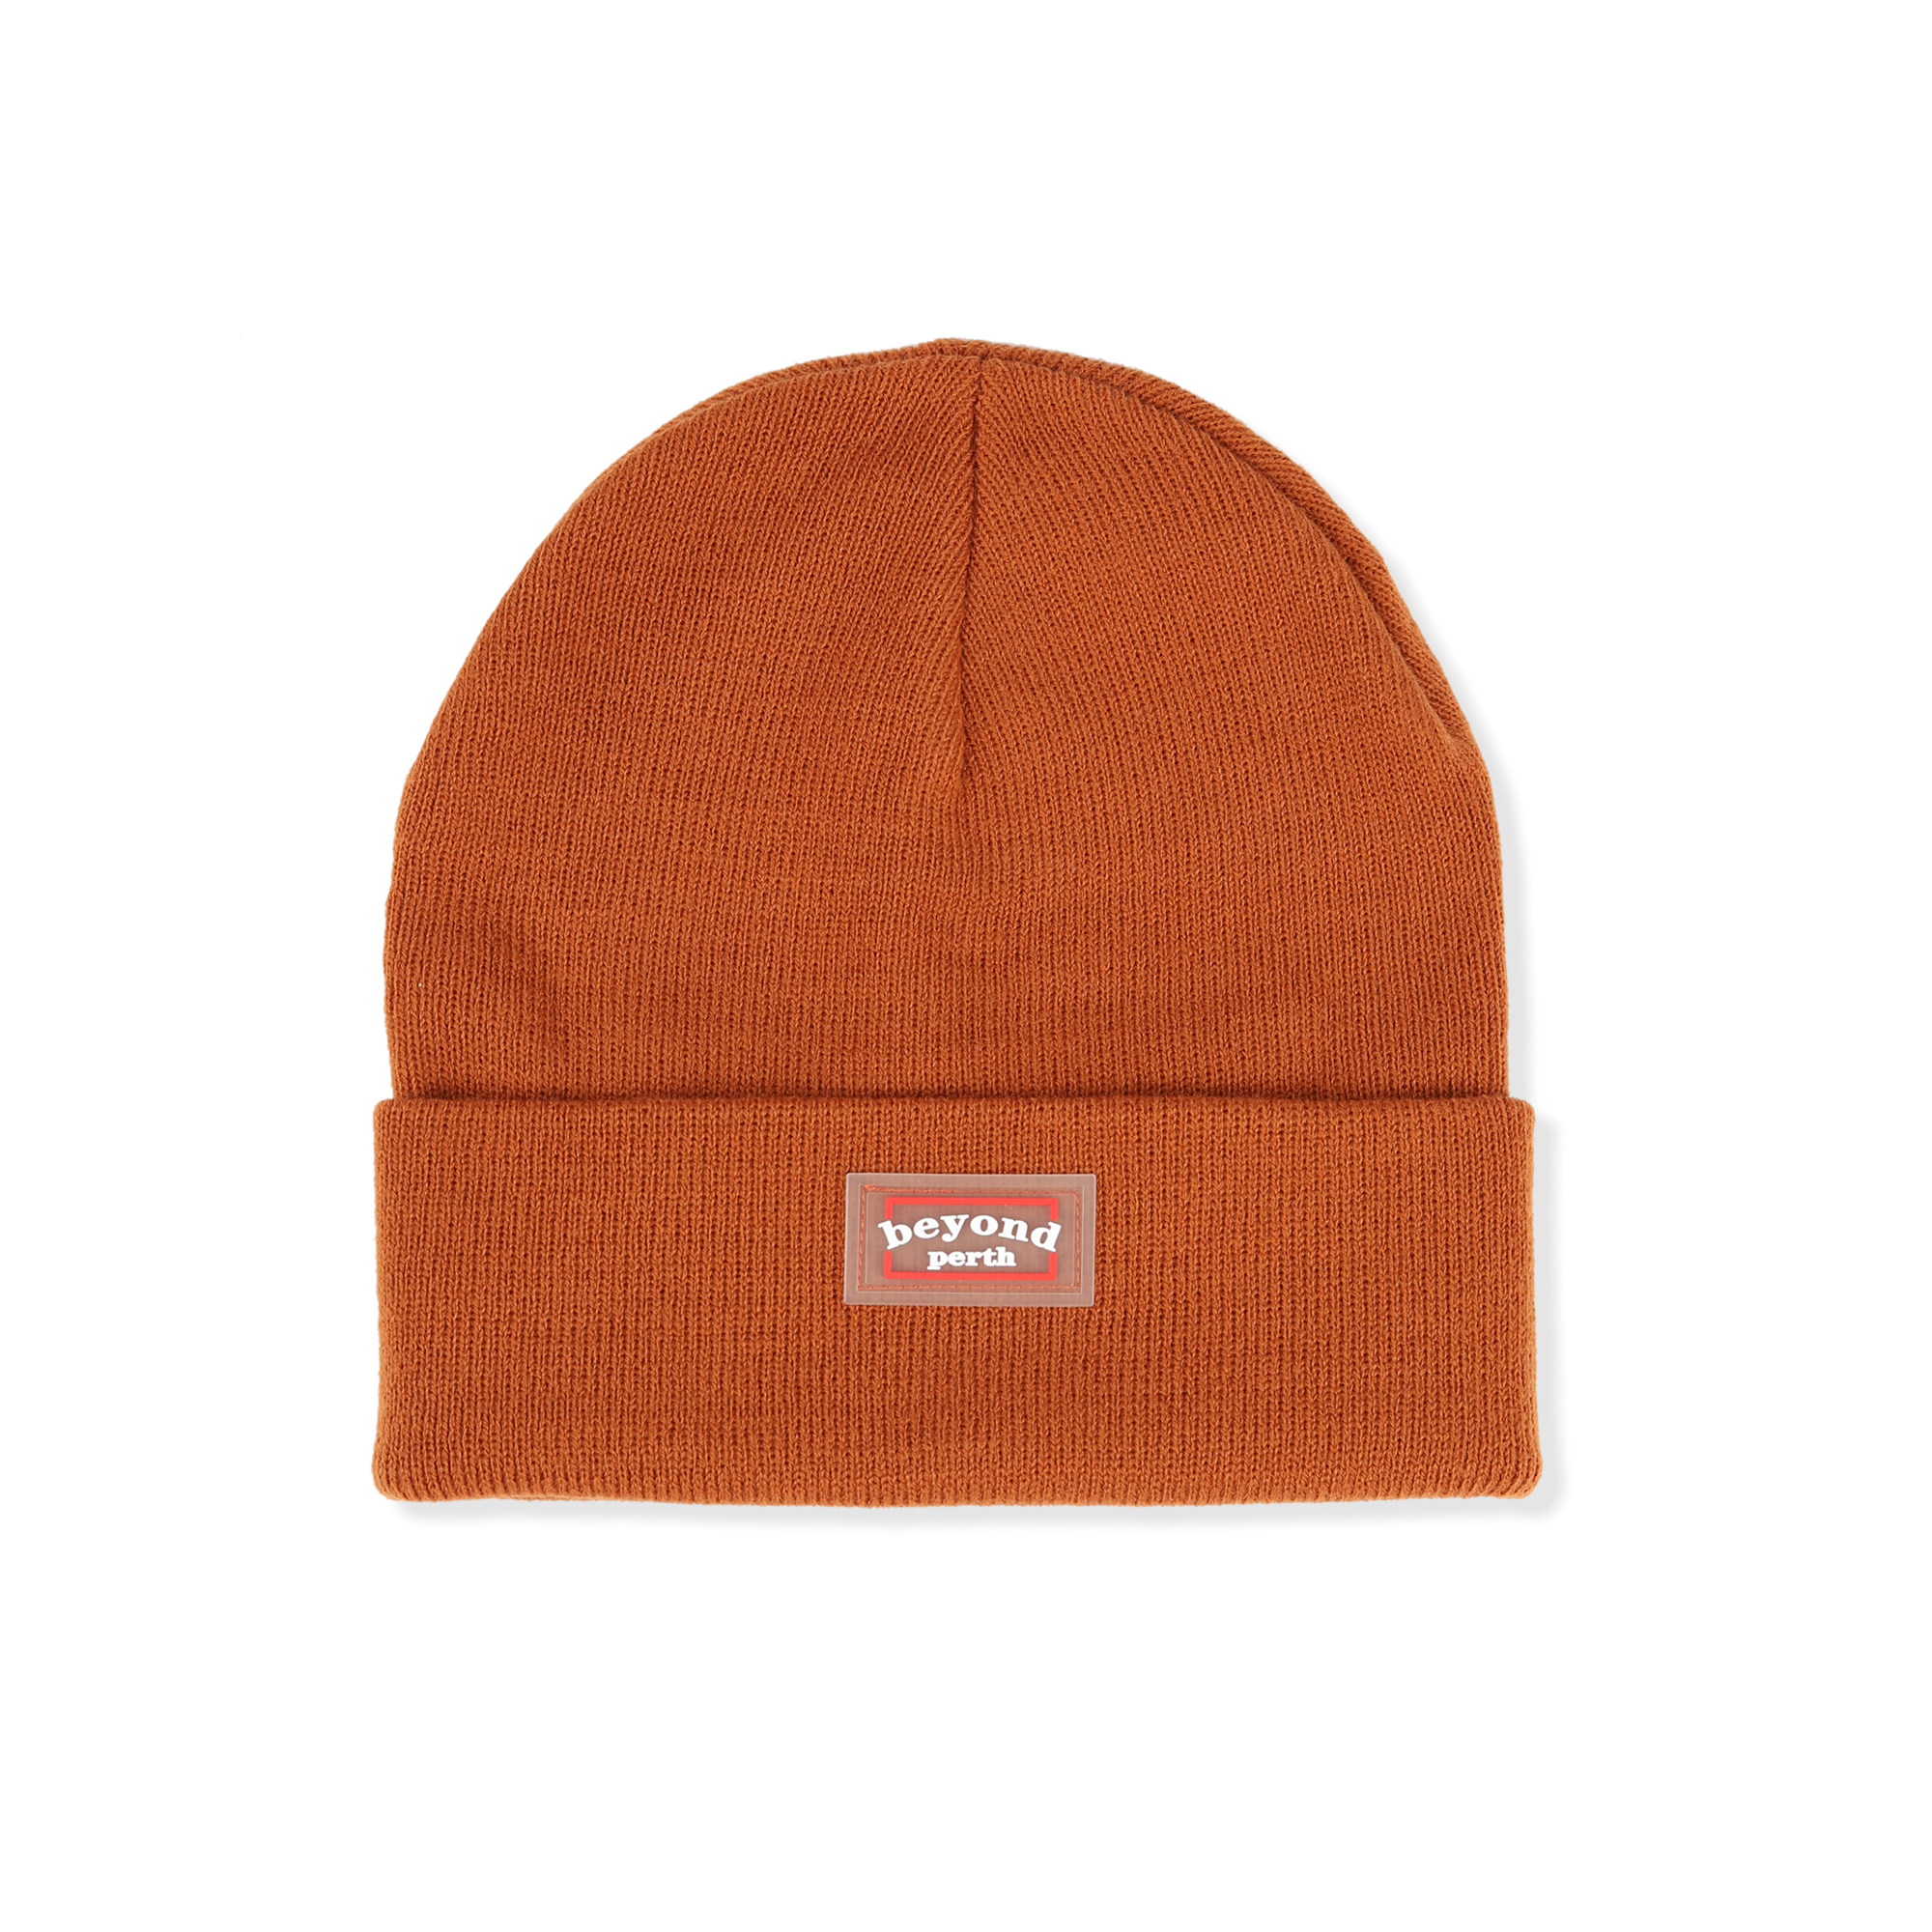 Beyond Rubber Patch Beanie Product Photo #1